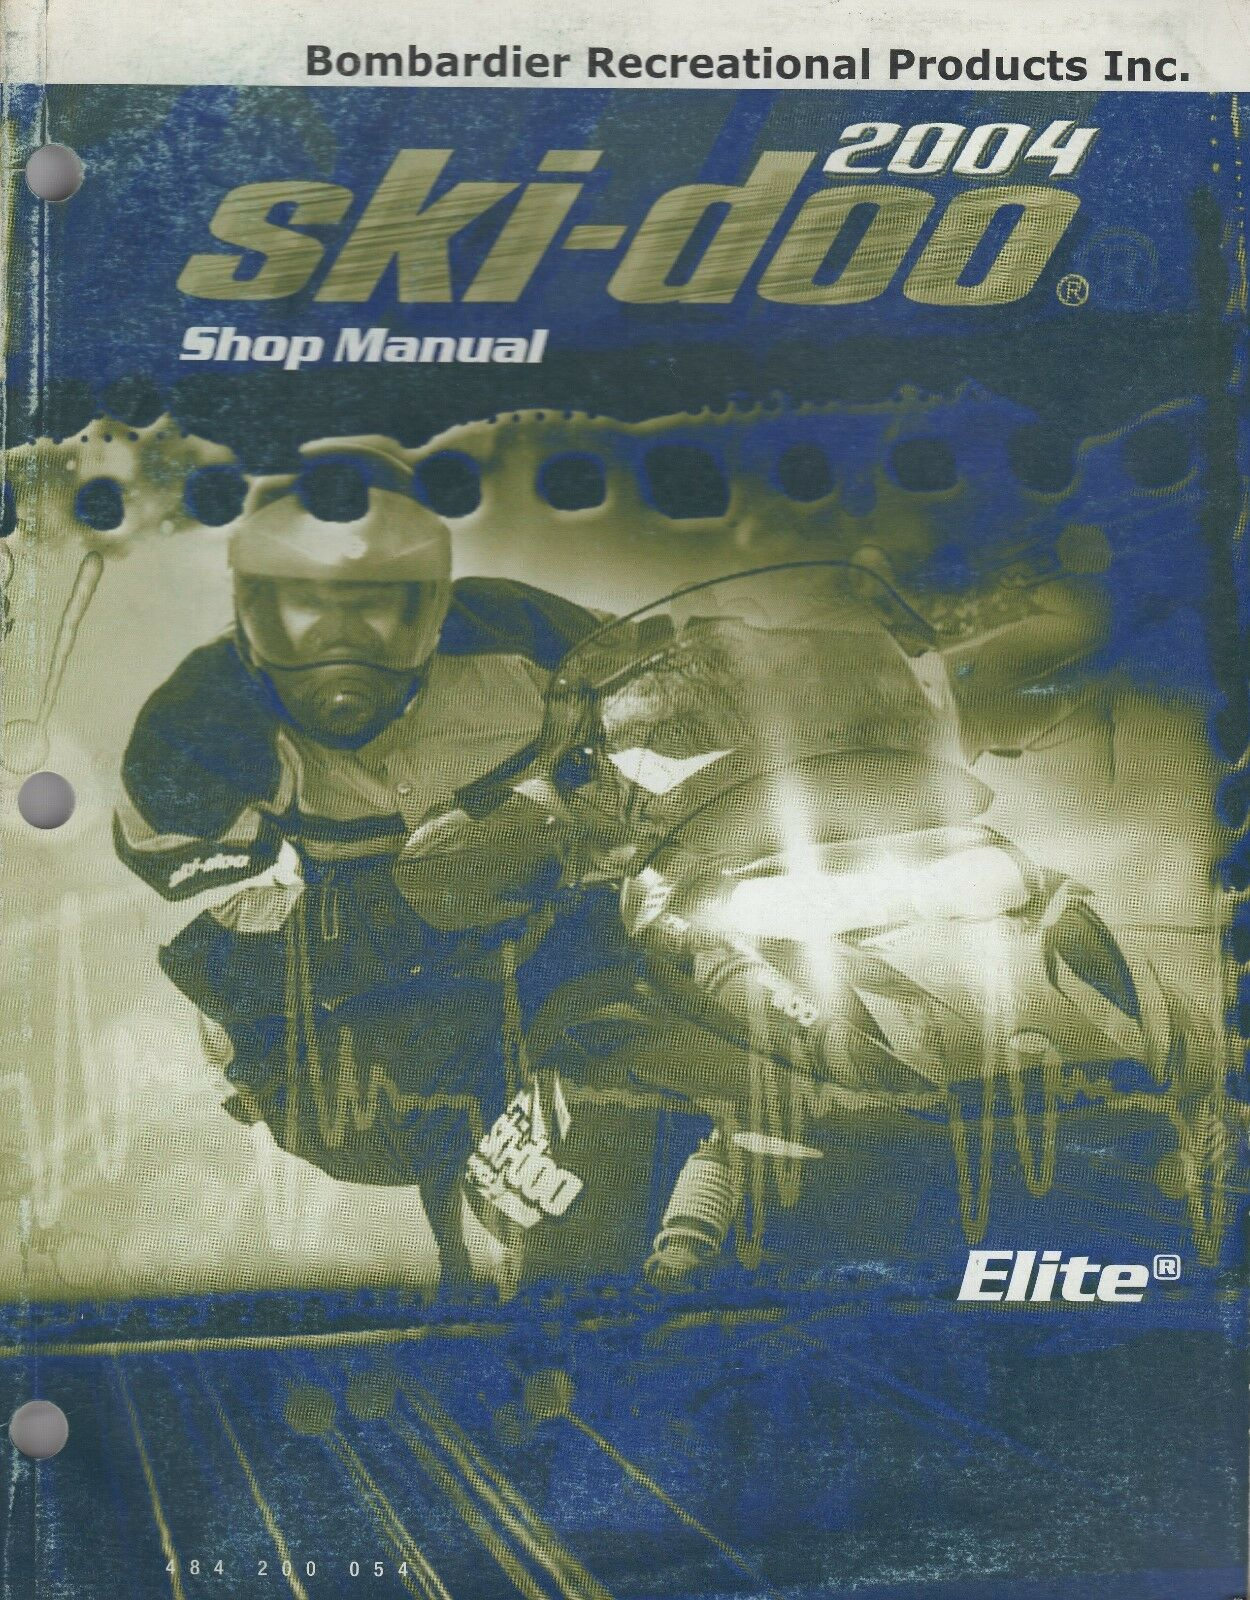 2004 SKI-DOO SNOWMOBILE ELITE SHOP MANUAL  484 200 054 (629)